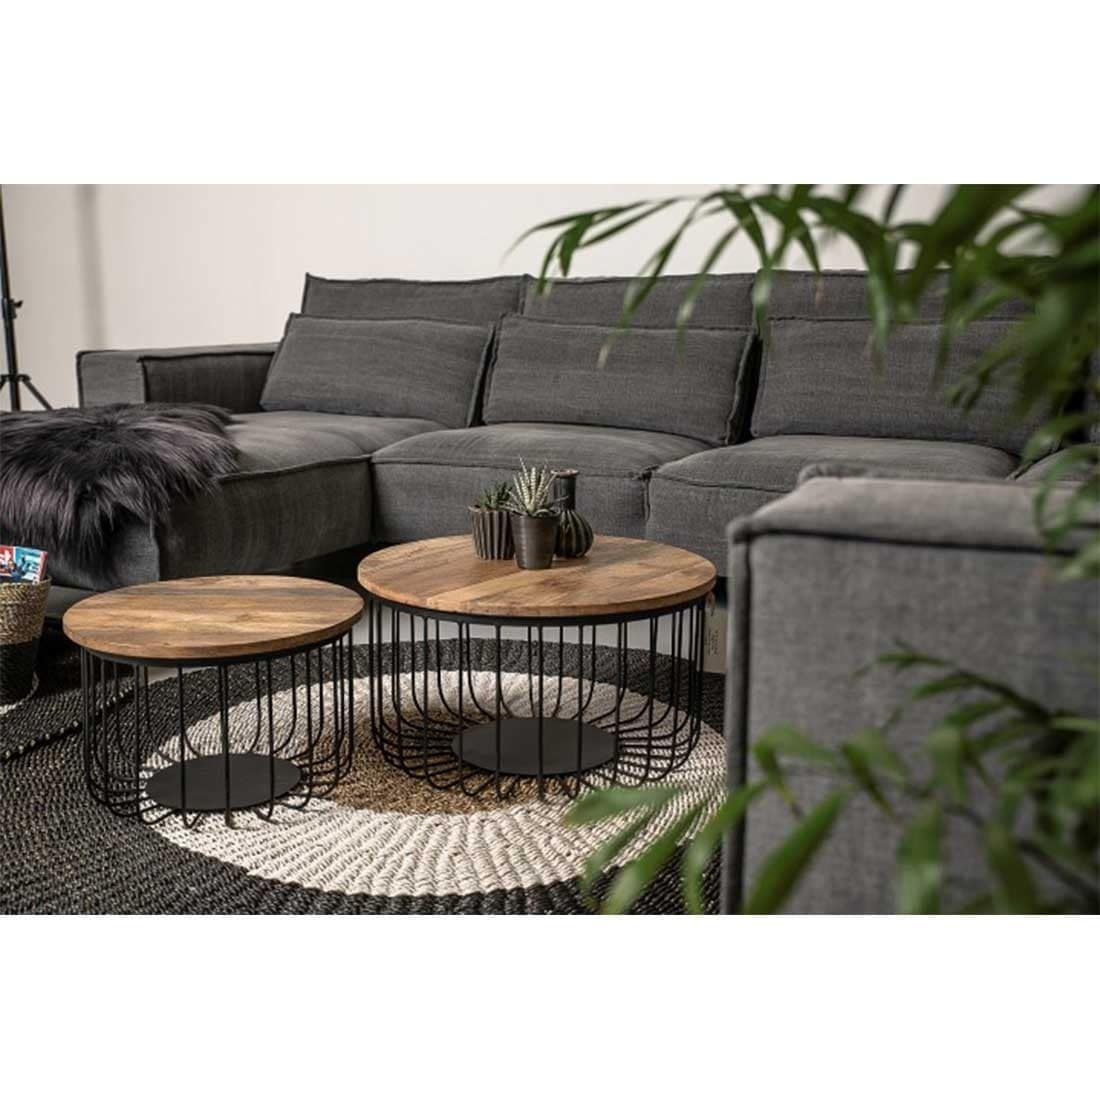 Photo of HSM Collection Coffee Table Set Maggot 2 pcs.